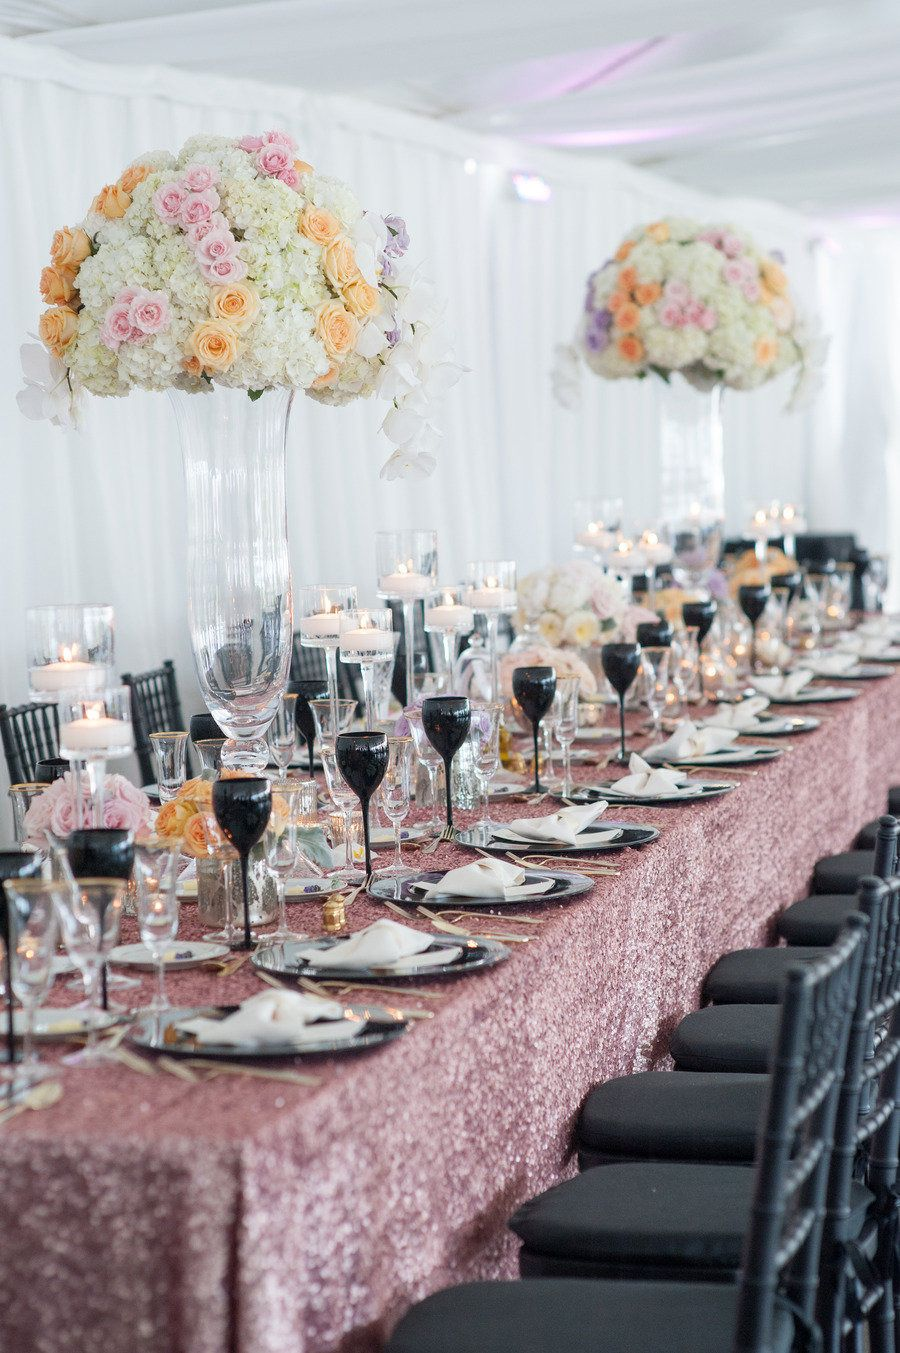 #tablescapes, #linens  Photography: Leila Brewster Photography - leilabrewsterphotography.com/ Event Design + Planning: TRUE Event - trueevent.com Floral Design: Stoneblossom Floral and Wedding Design - stoneblossomflorals.com  Read More: http://www.stylemepretty.com/2013/06/27/old-saybrook-connecticut-wedding-from-true-event-leila-brewster-photography/